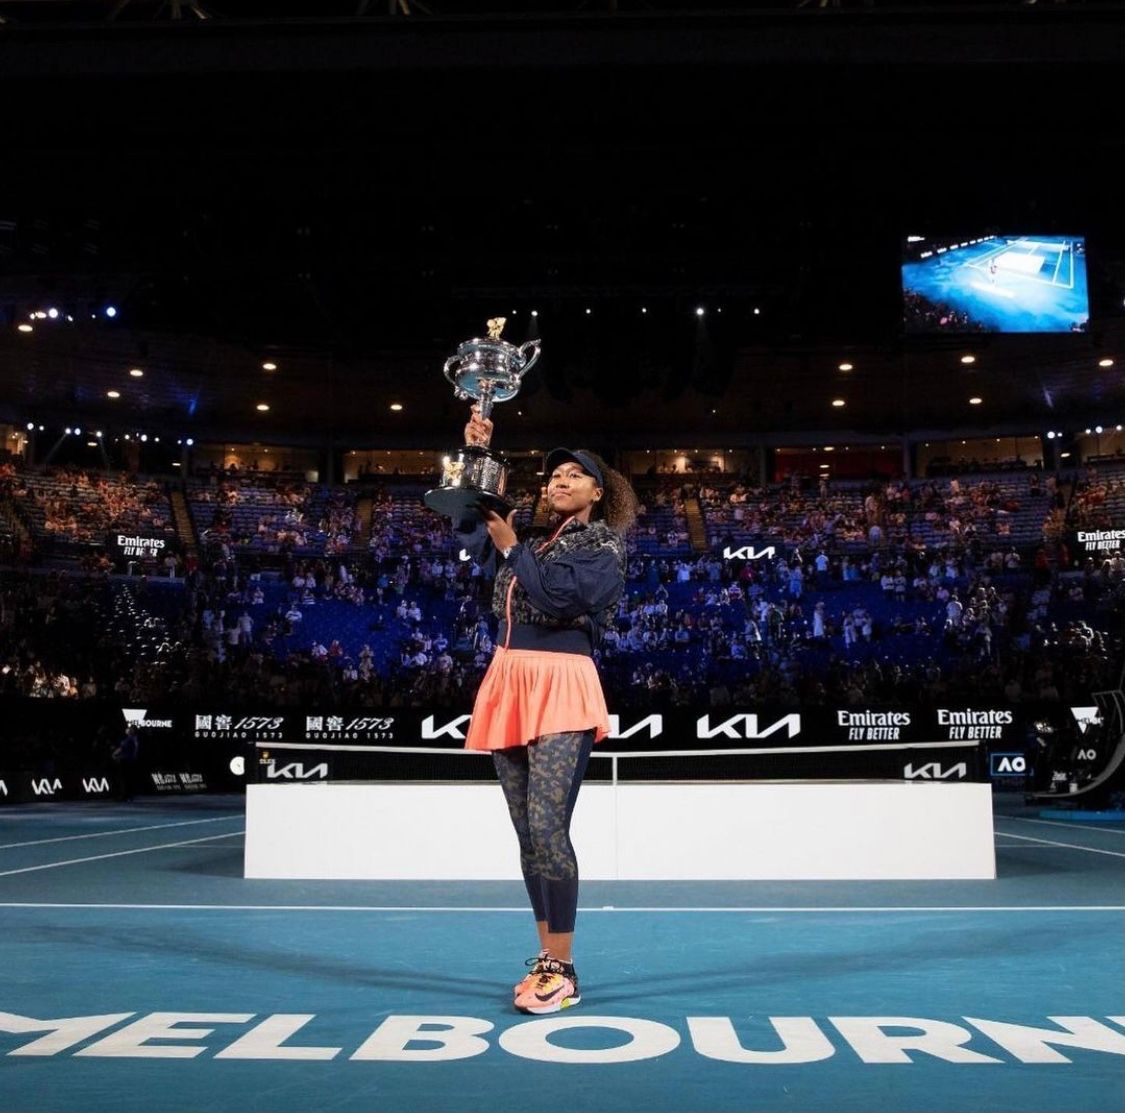 Naomi Osaka has won the 2021 #AusOpen. She is only the second woman in the Open era to go 4-0 in her first four major finals appearances.